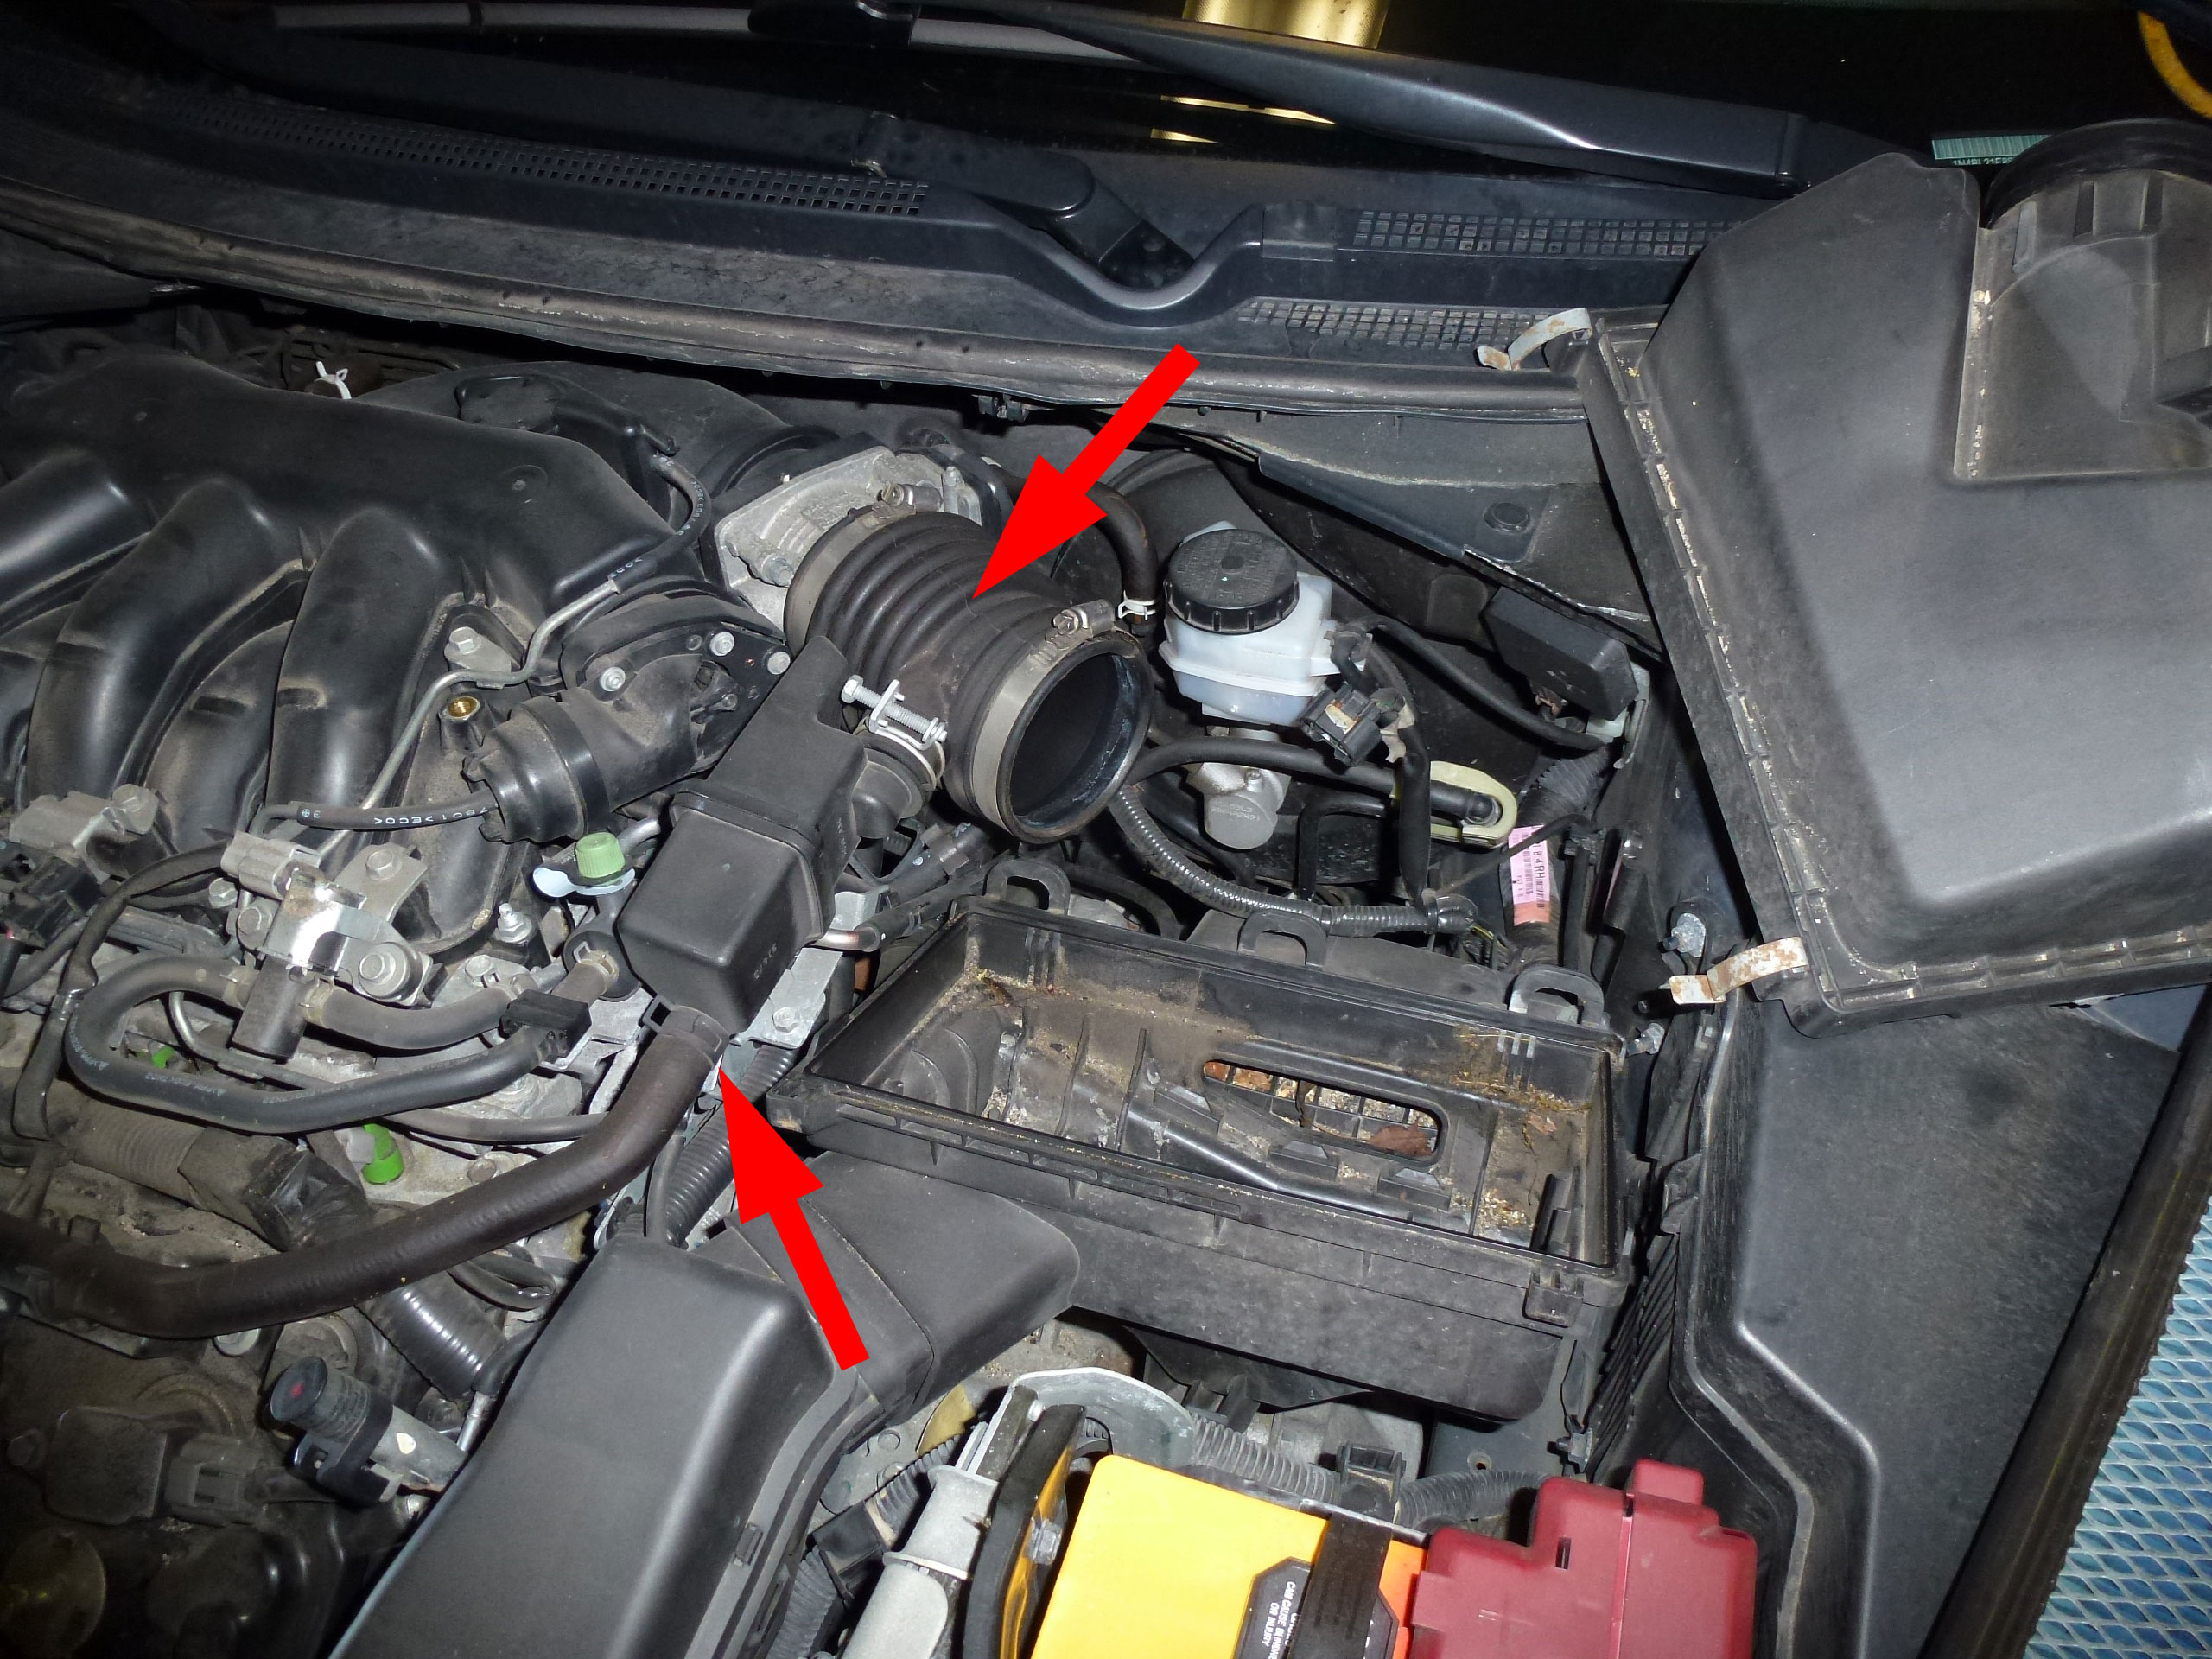 Lift the cover out of the way. Disconnect the vacuum line on the bottom of the air intake assembly and remove the intake hose.